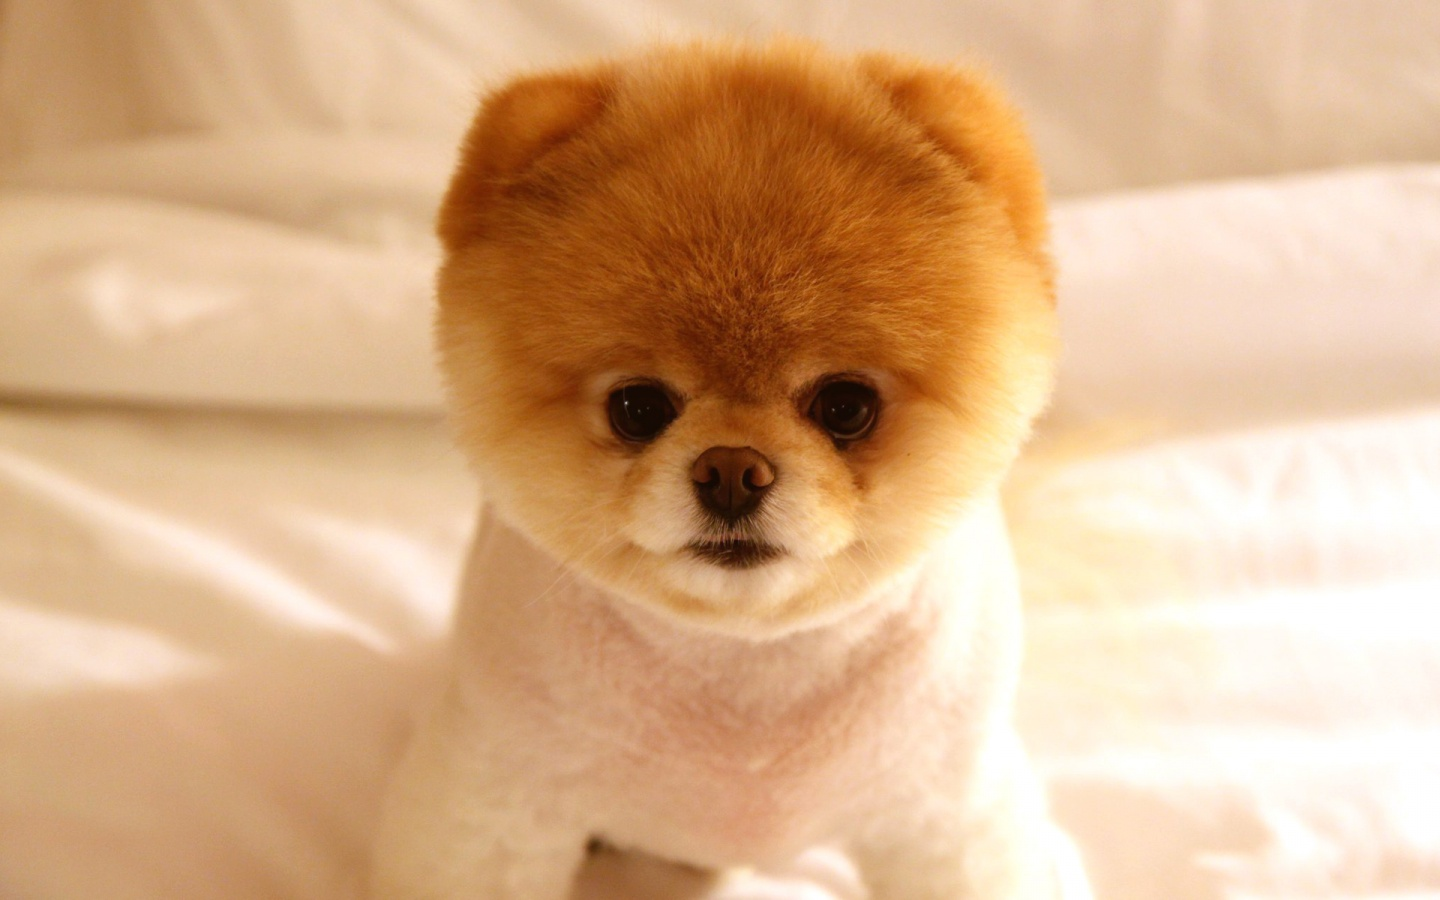 Cute Dog Boo Wallpapers HD Wallpapers 1440x900